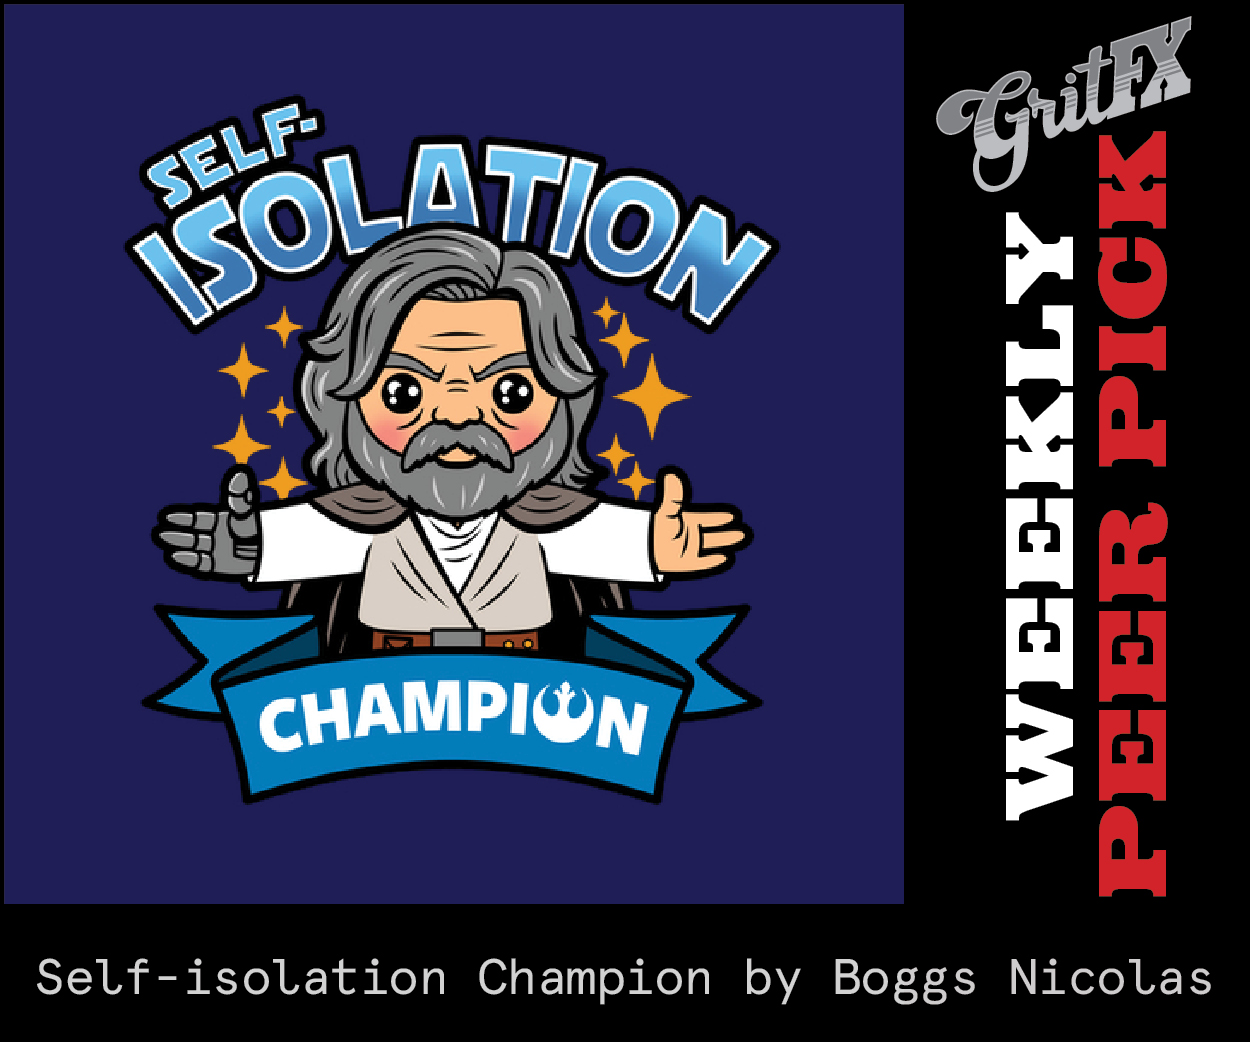 Self-isolation Champion by Boggs Nicolas